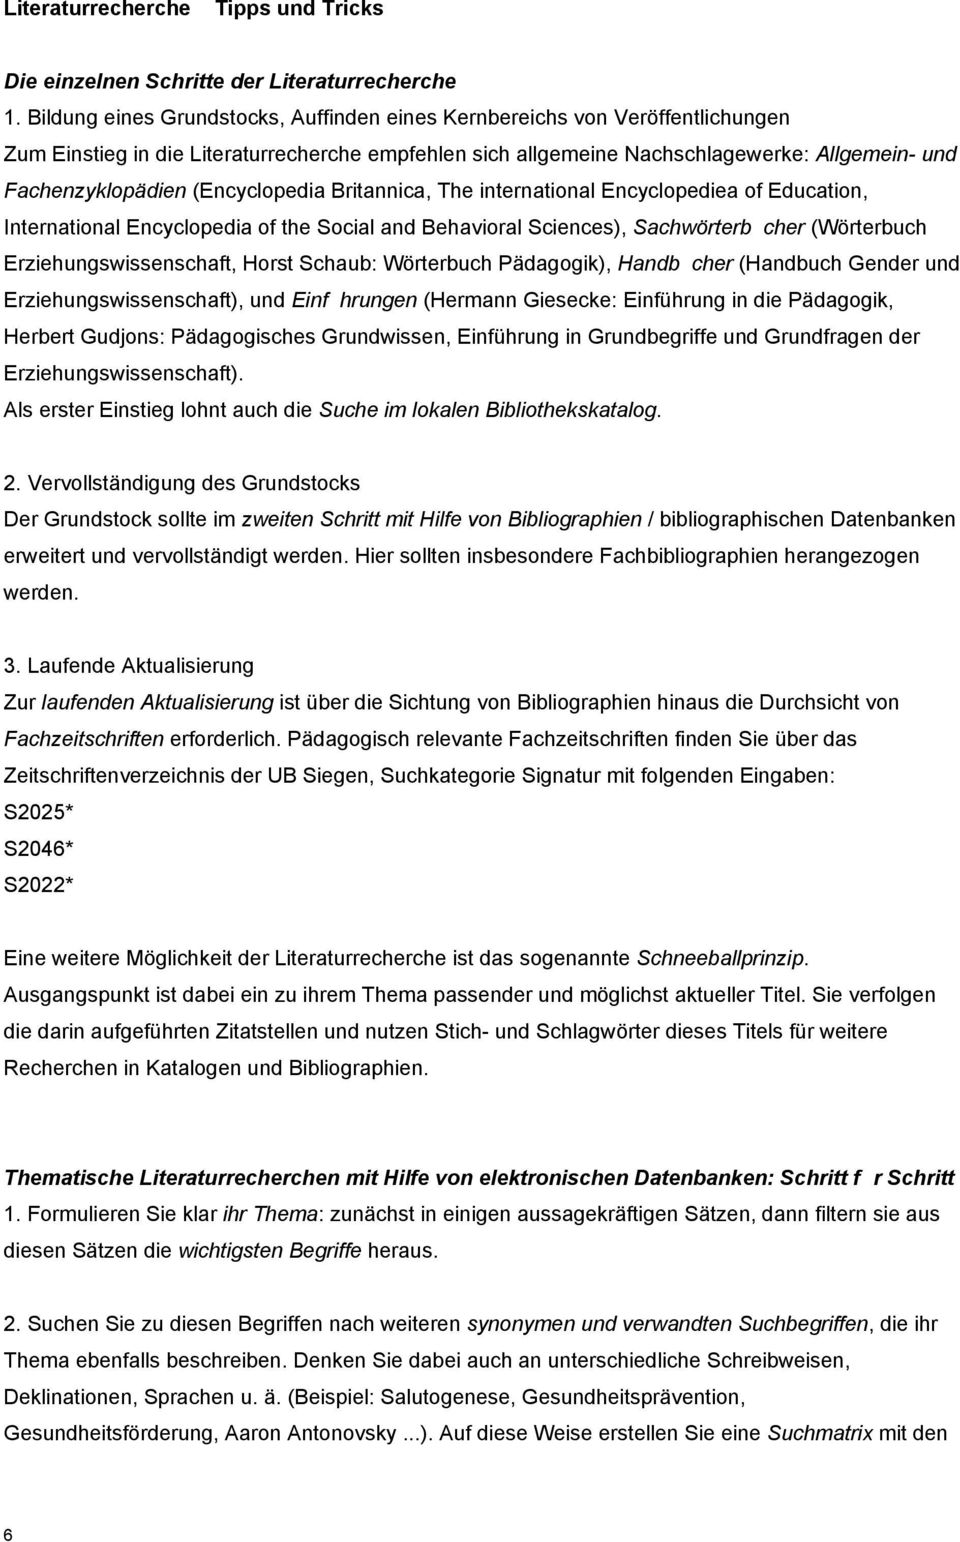 (Encyclopedia Britannica, The international Encyclopediea of Education, International Encyclopedia of the Social and Behavioral Sciences), Sachwörterbücher (Wörterbuch Erziehungswissenschaft, Horst